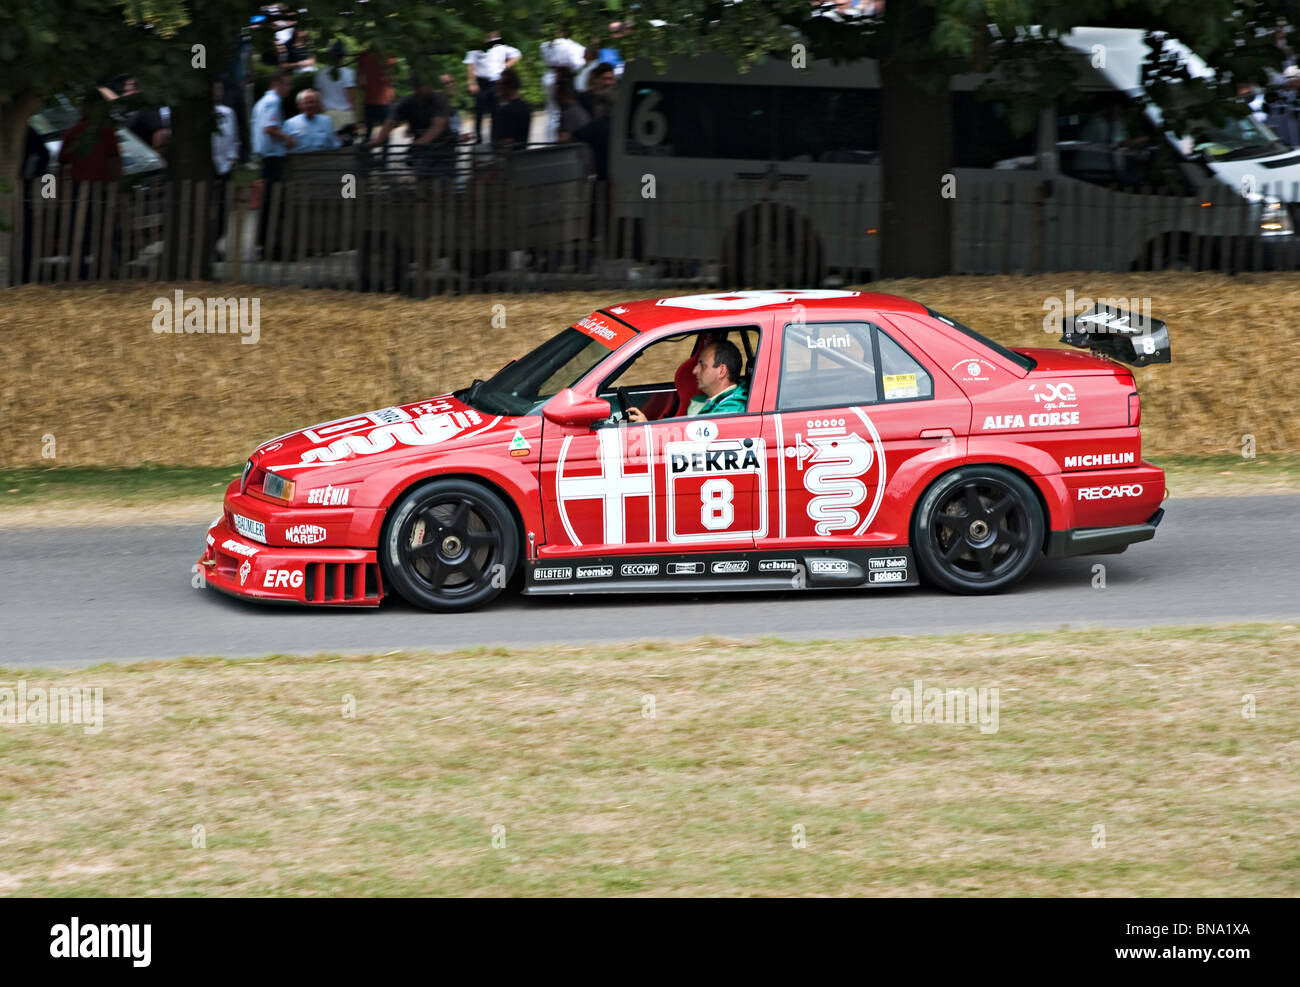 alfa romeo 155 v6 ti dtm touring race car at goodwood festival of stock photo 30339186 alamy. Black Bedroom Furniture Sets. Home Design Ideas